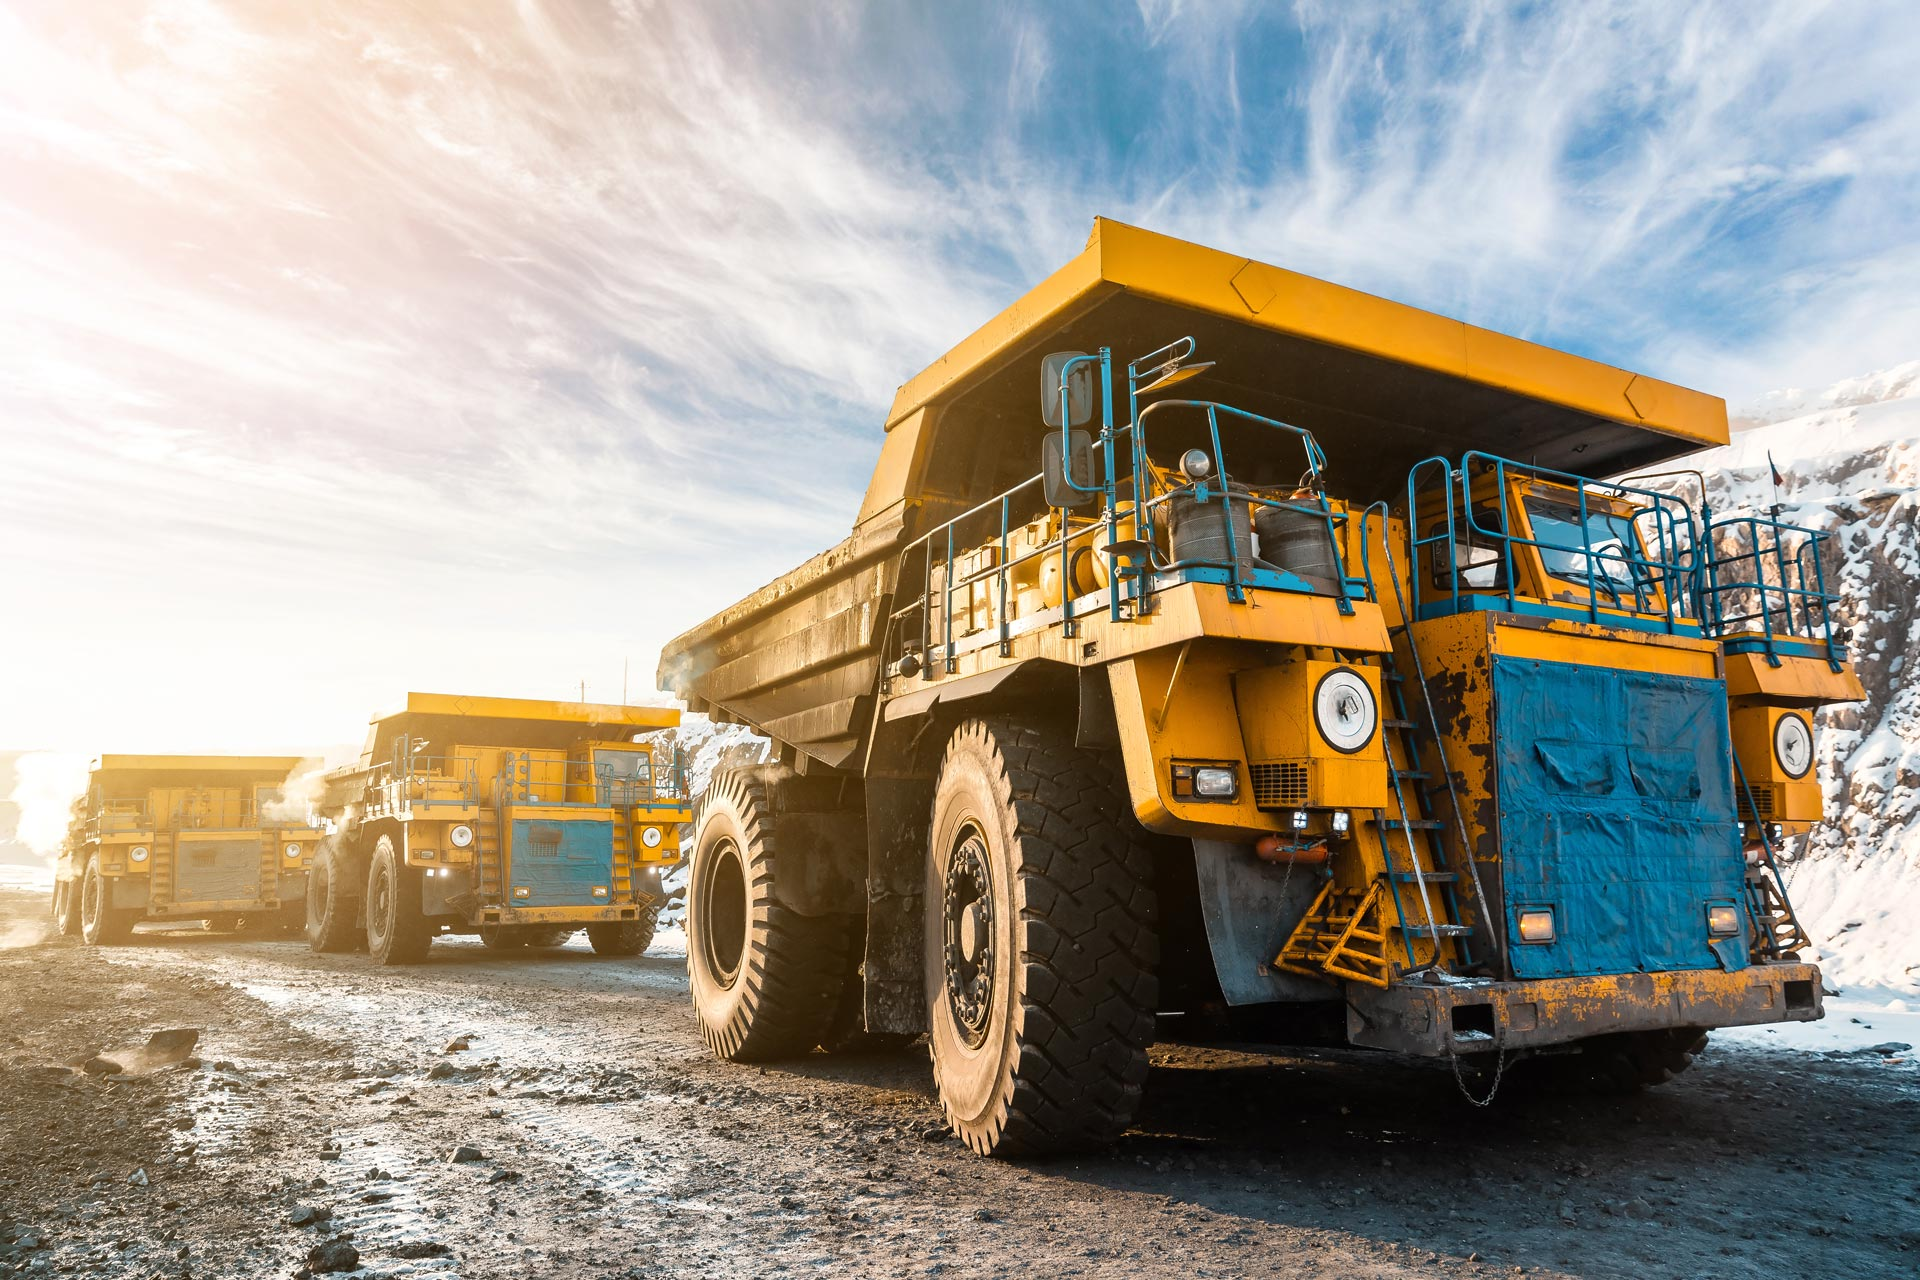 Off-Highway mining trucks